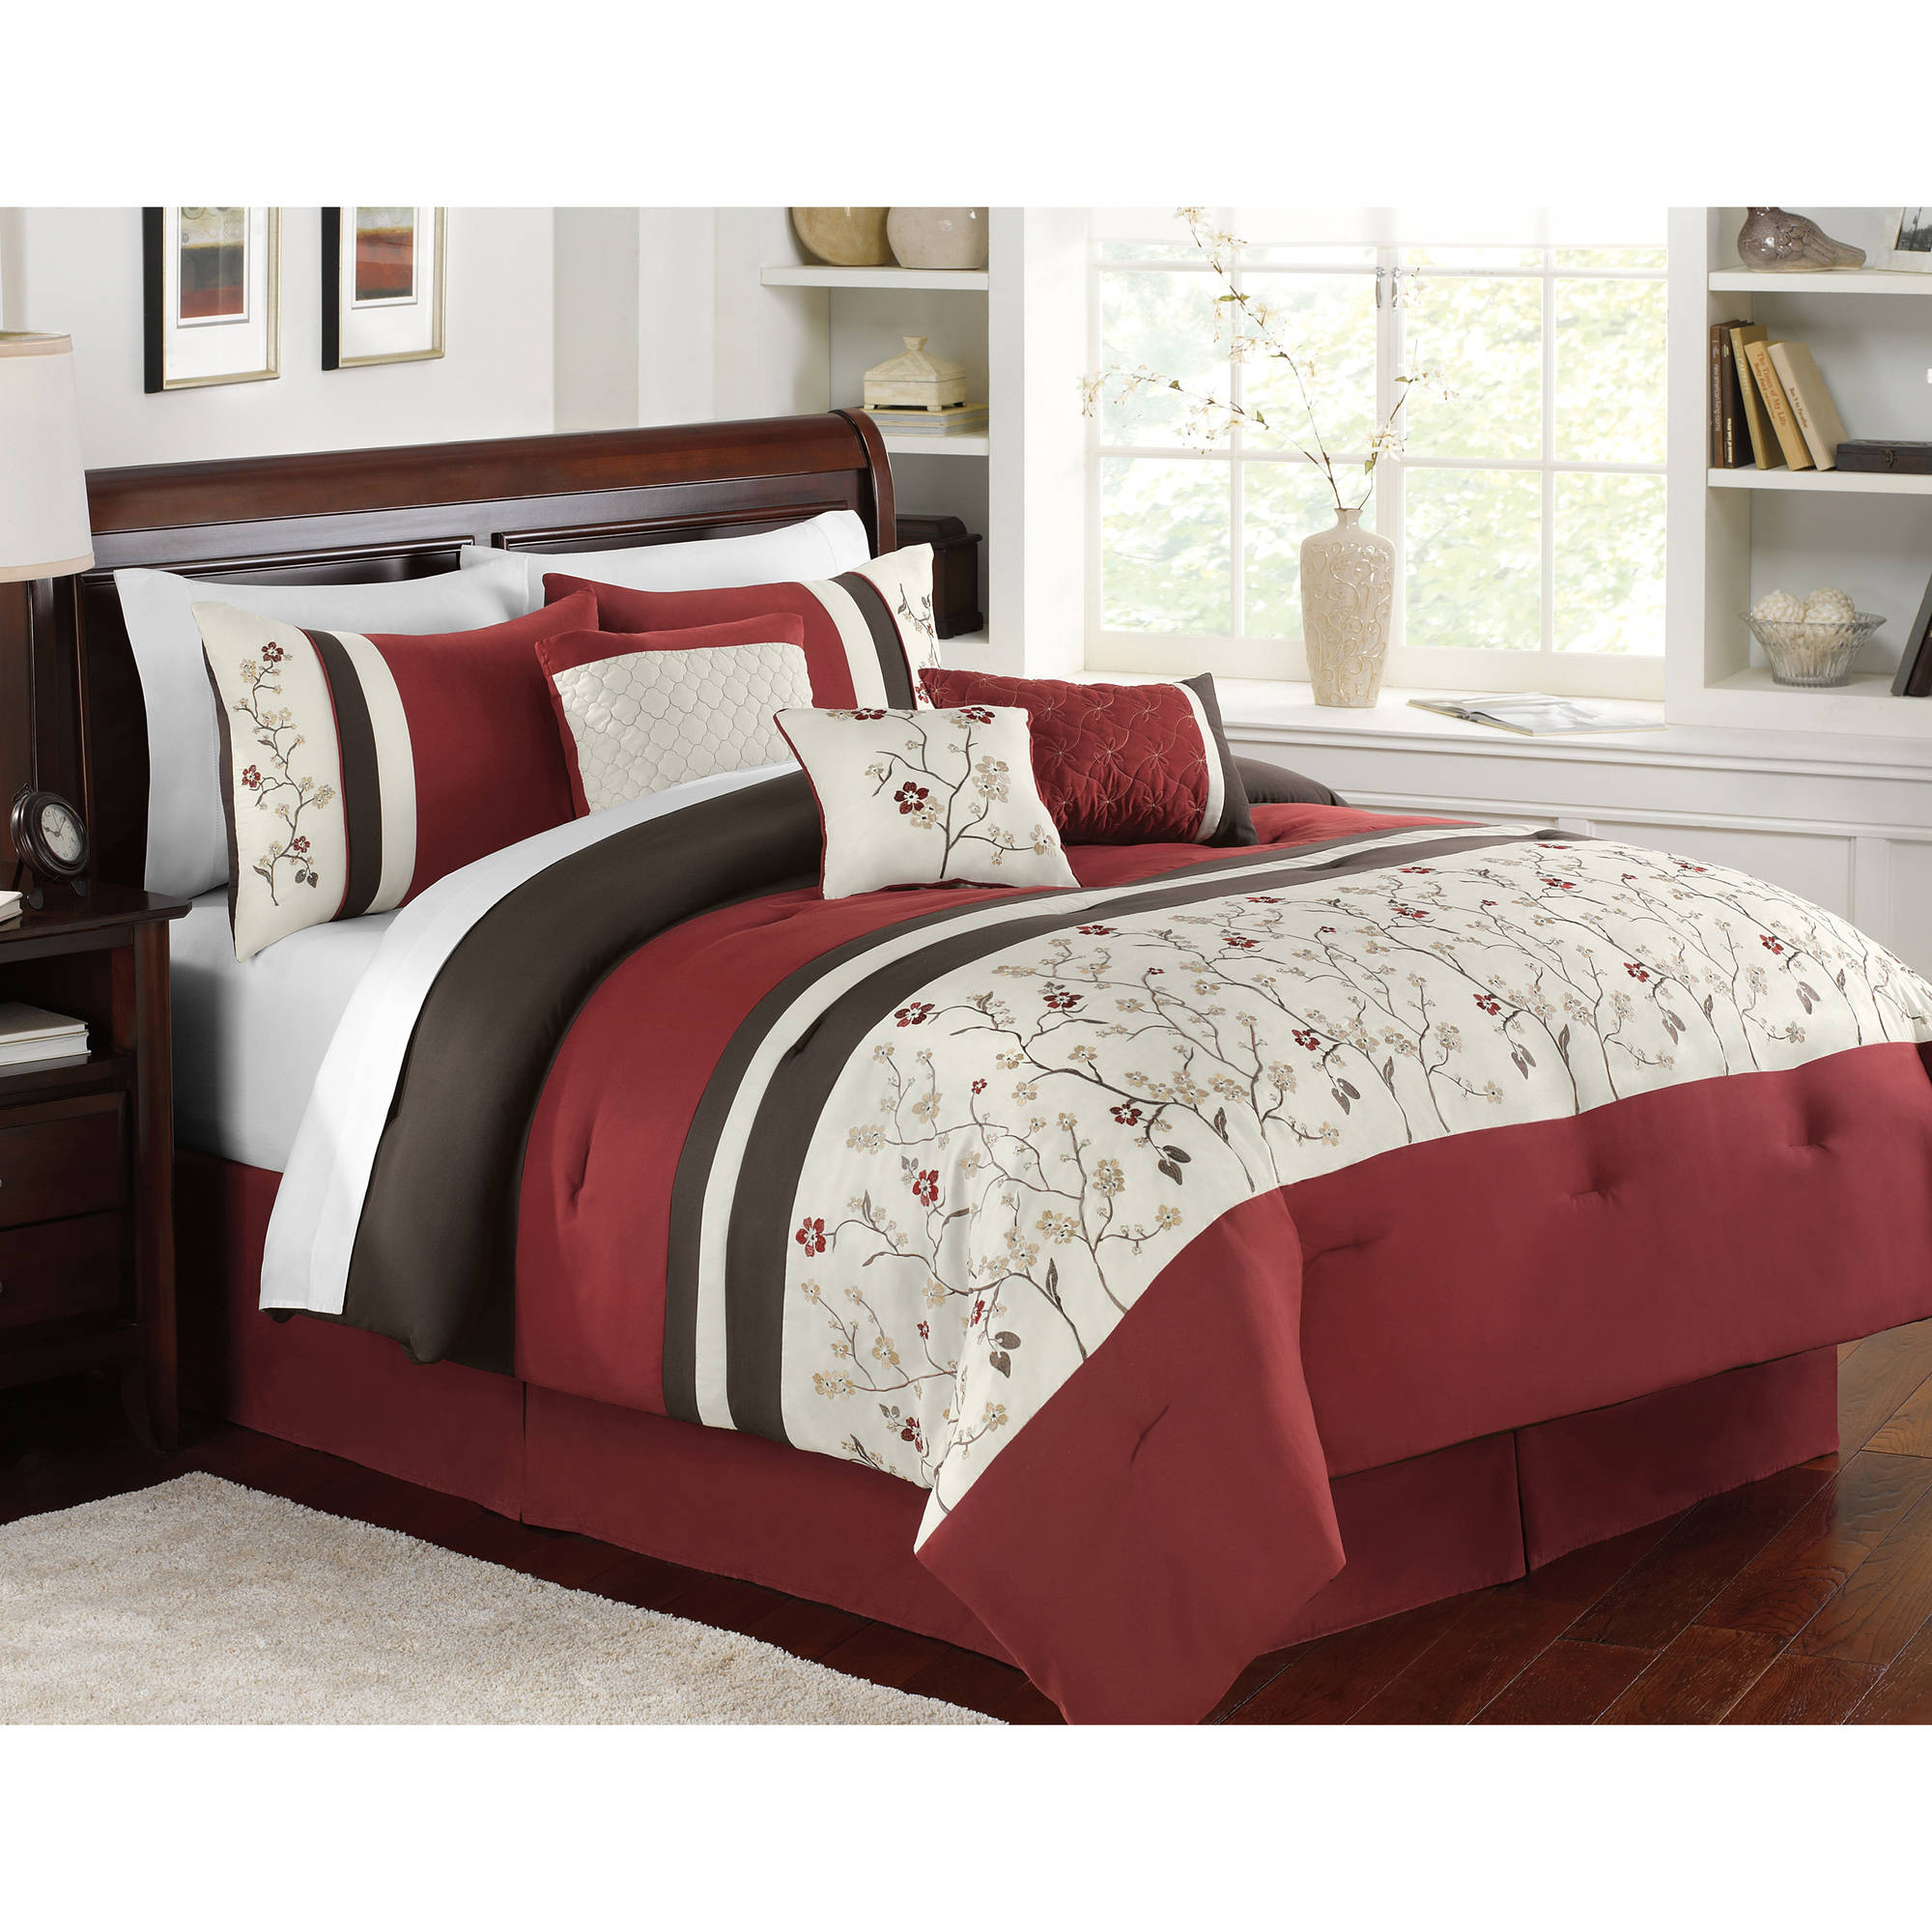 Brown and red bedding - Better Homes And Gardens 7piece Burgundy U0026 Brown Vines Bedding Comforter Set Set Walmartcom